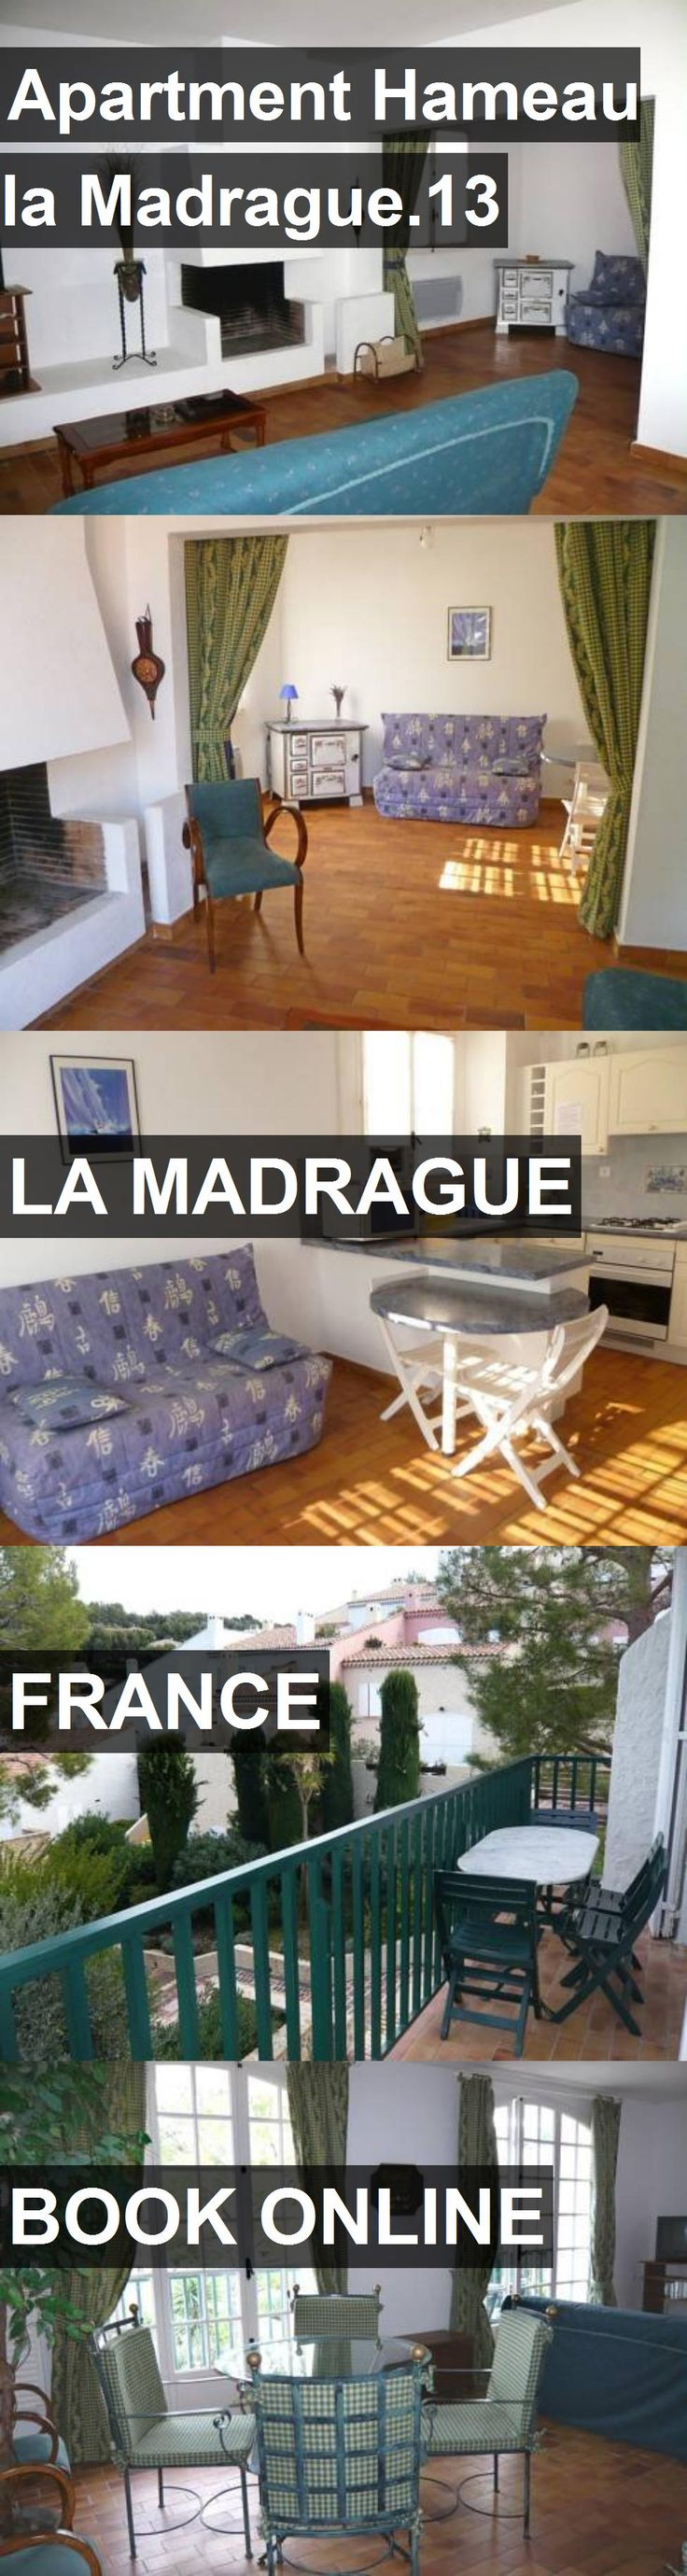 Apartment Hameau la Madrague.13 in La Madrague, France. For more information, photos, reviews and best prices please follow the link. #France #LaMadrague #travel #vacation #apartment